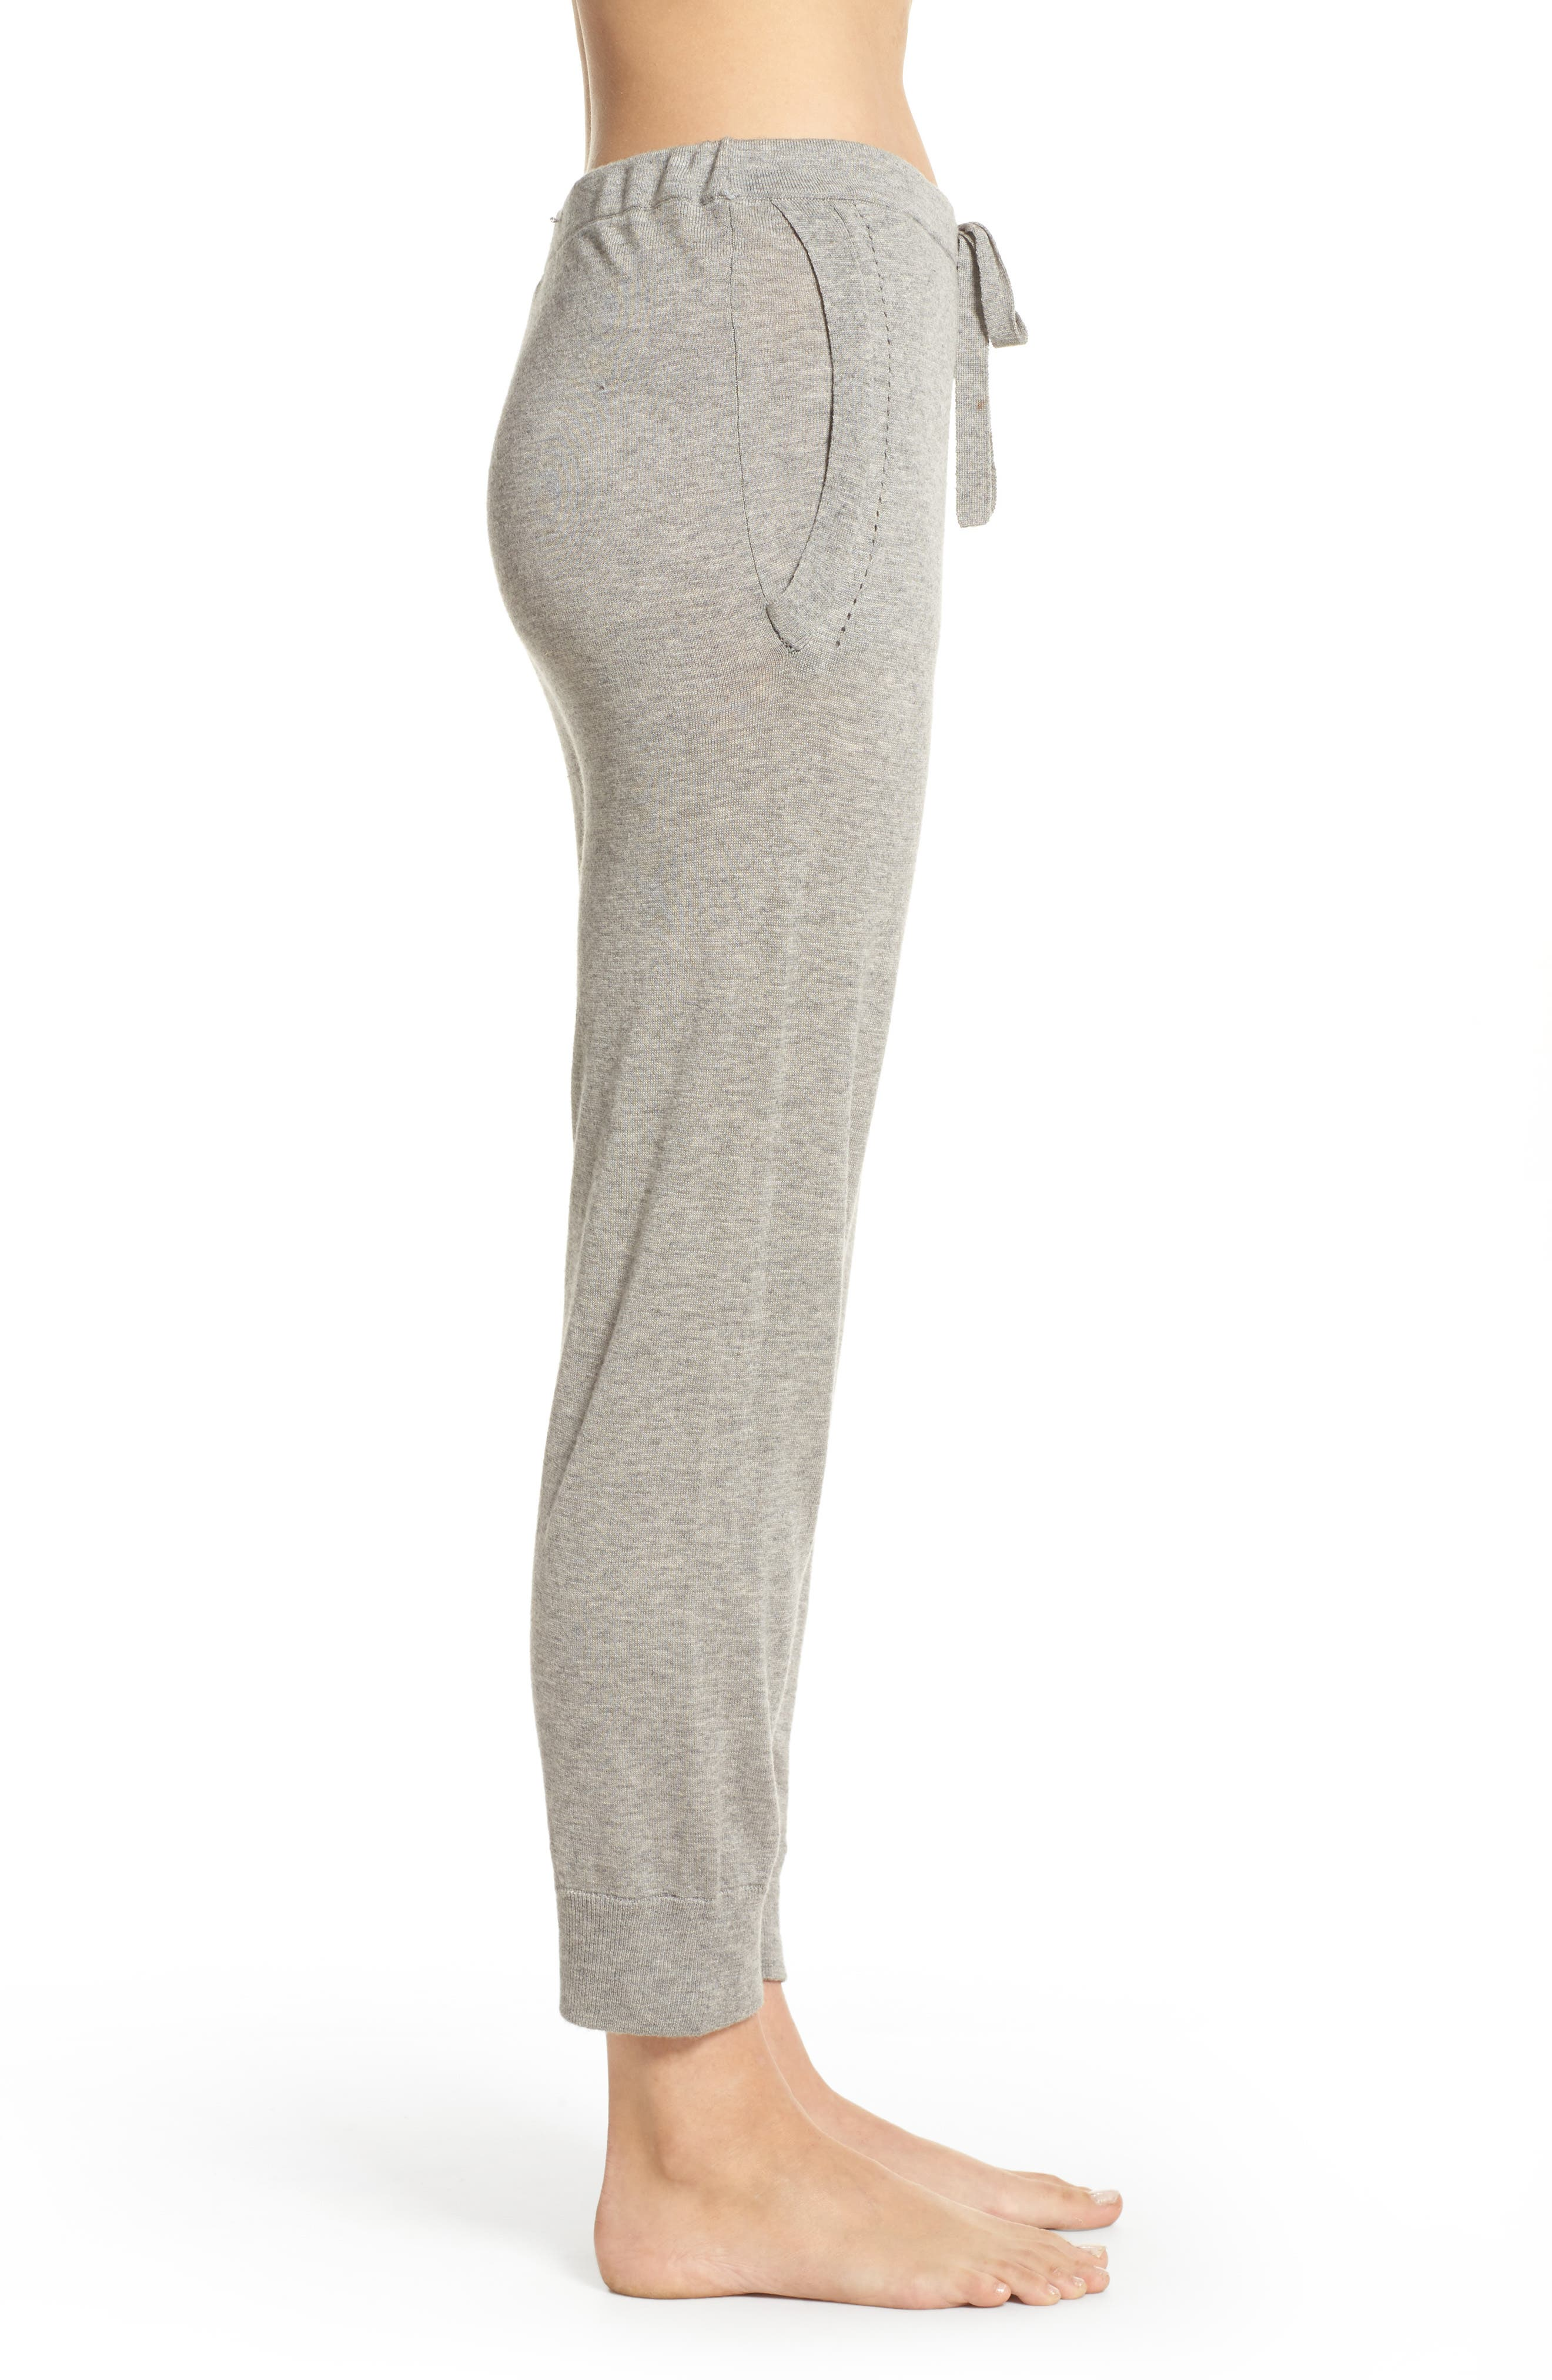 Myla Lounge Pants,                             Alternate thumbnail 3, color,                             Heather Grey